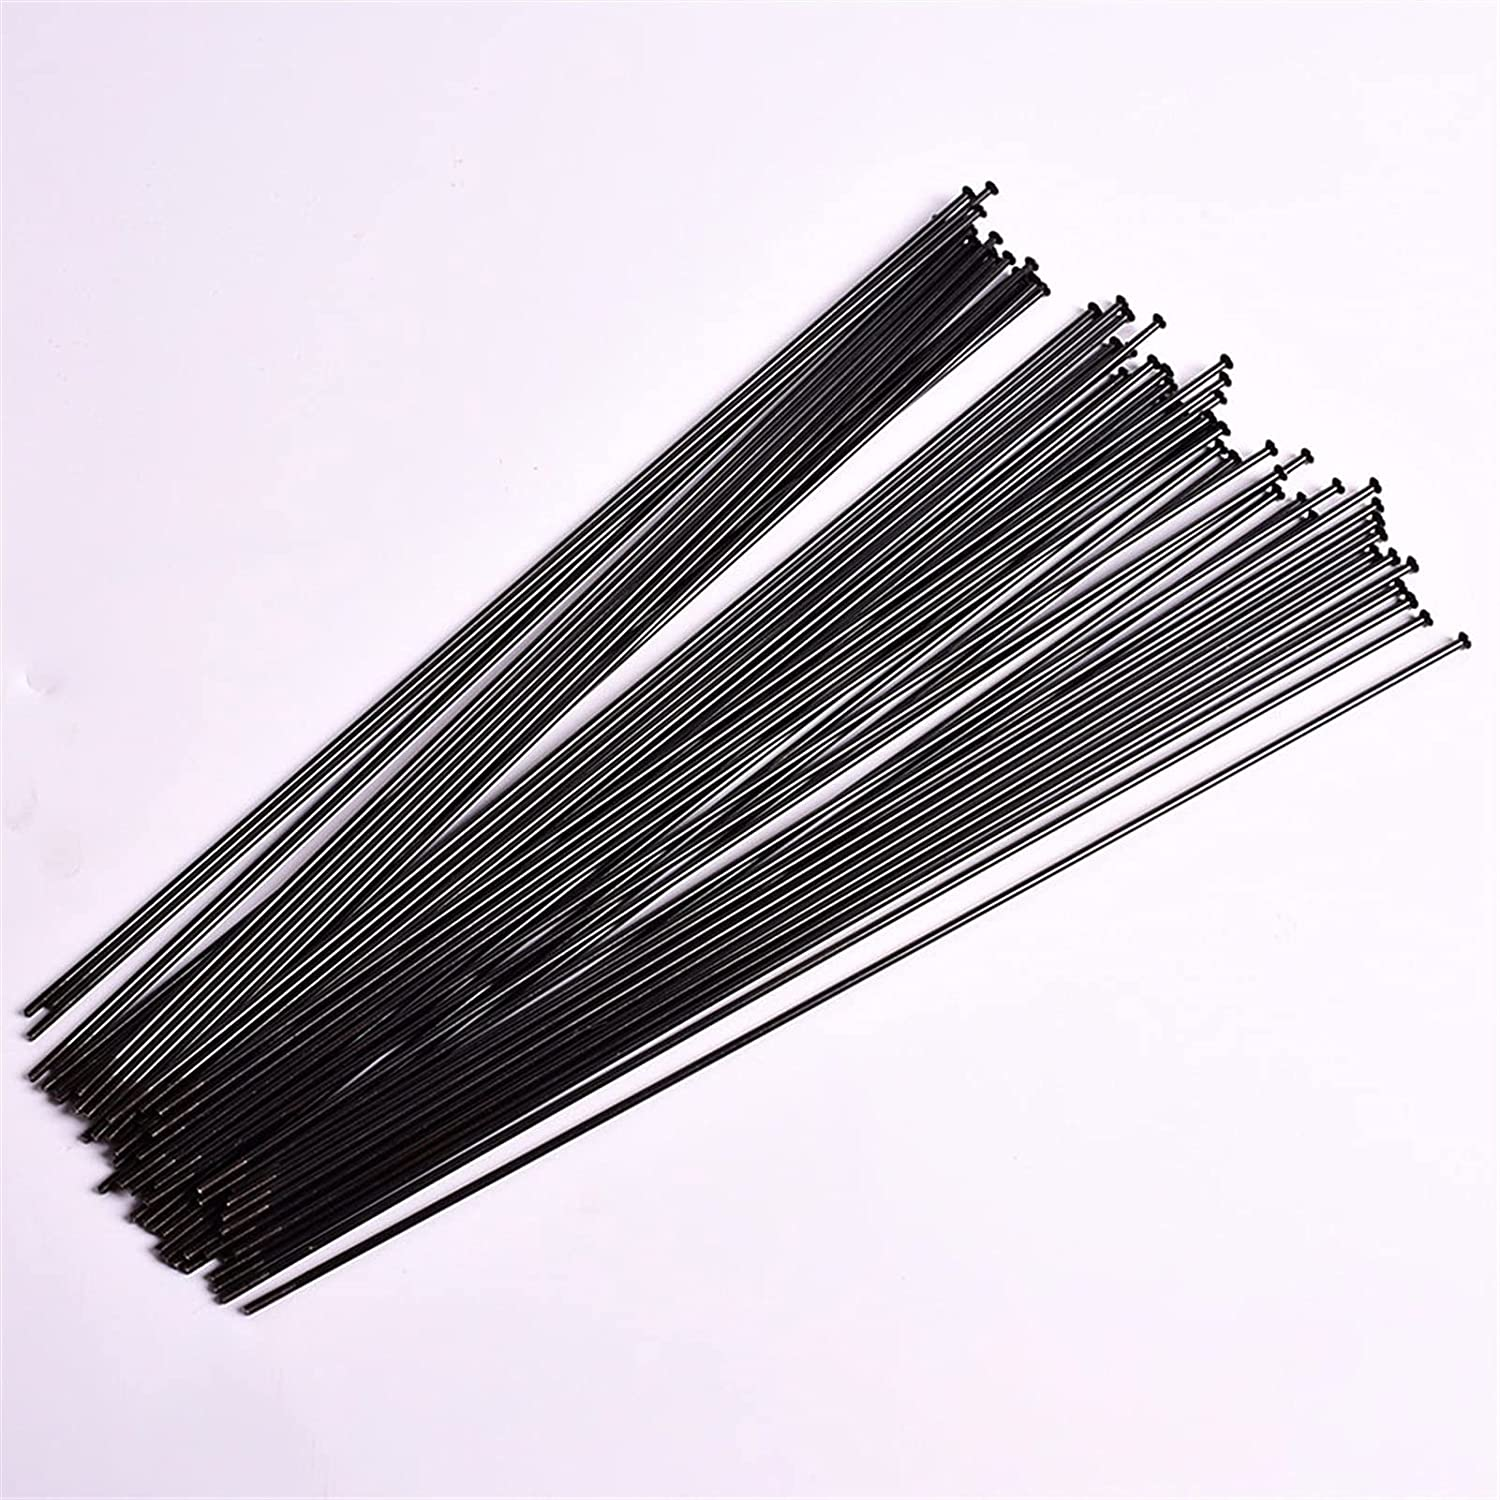 12pcs 265-278mm Bicycle Max 40% OFF Spokes Stainless online shop Bi Steel Racing